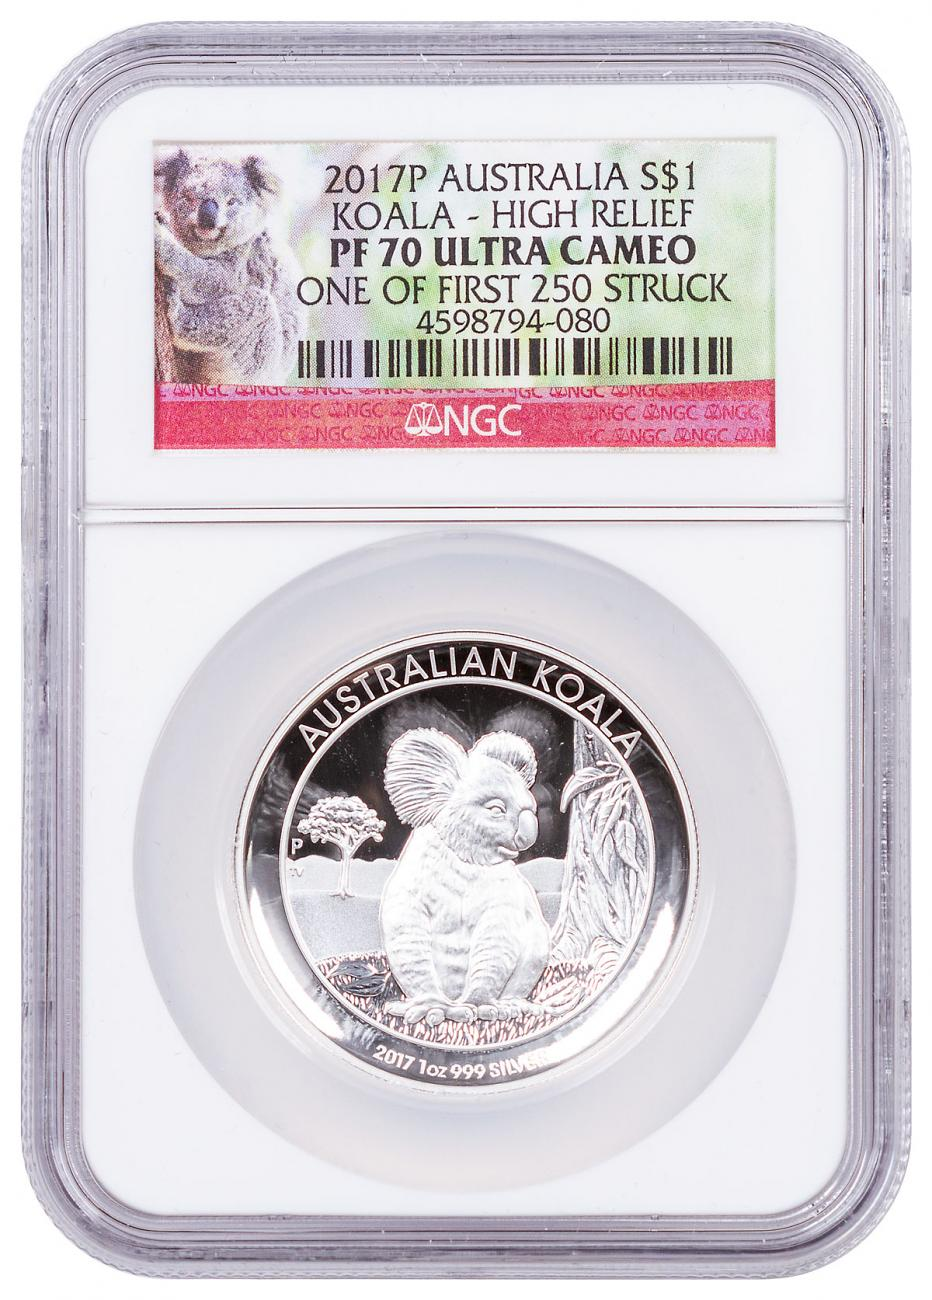 2017-P Australia 1 oz High Relief Silver Koala Proof $1 Coin NGC PF70 UC One of First 250 Struck